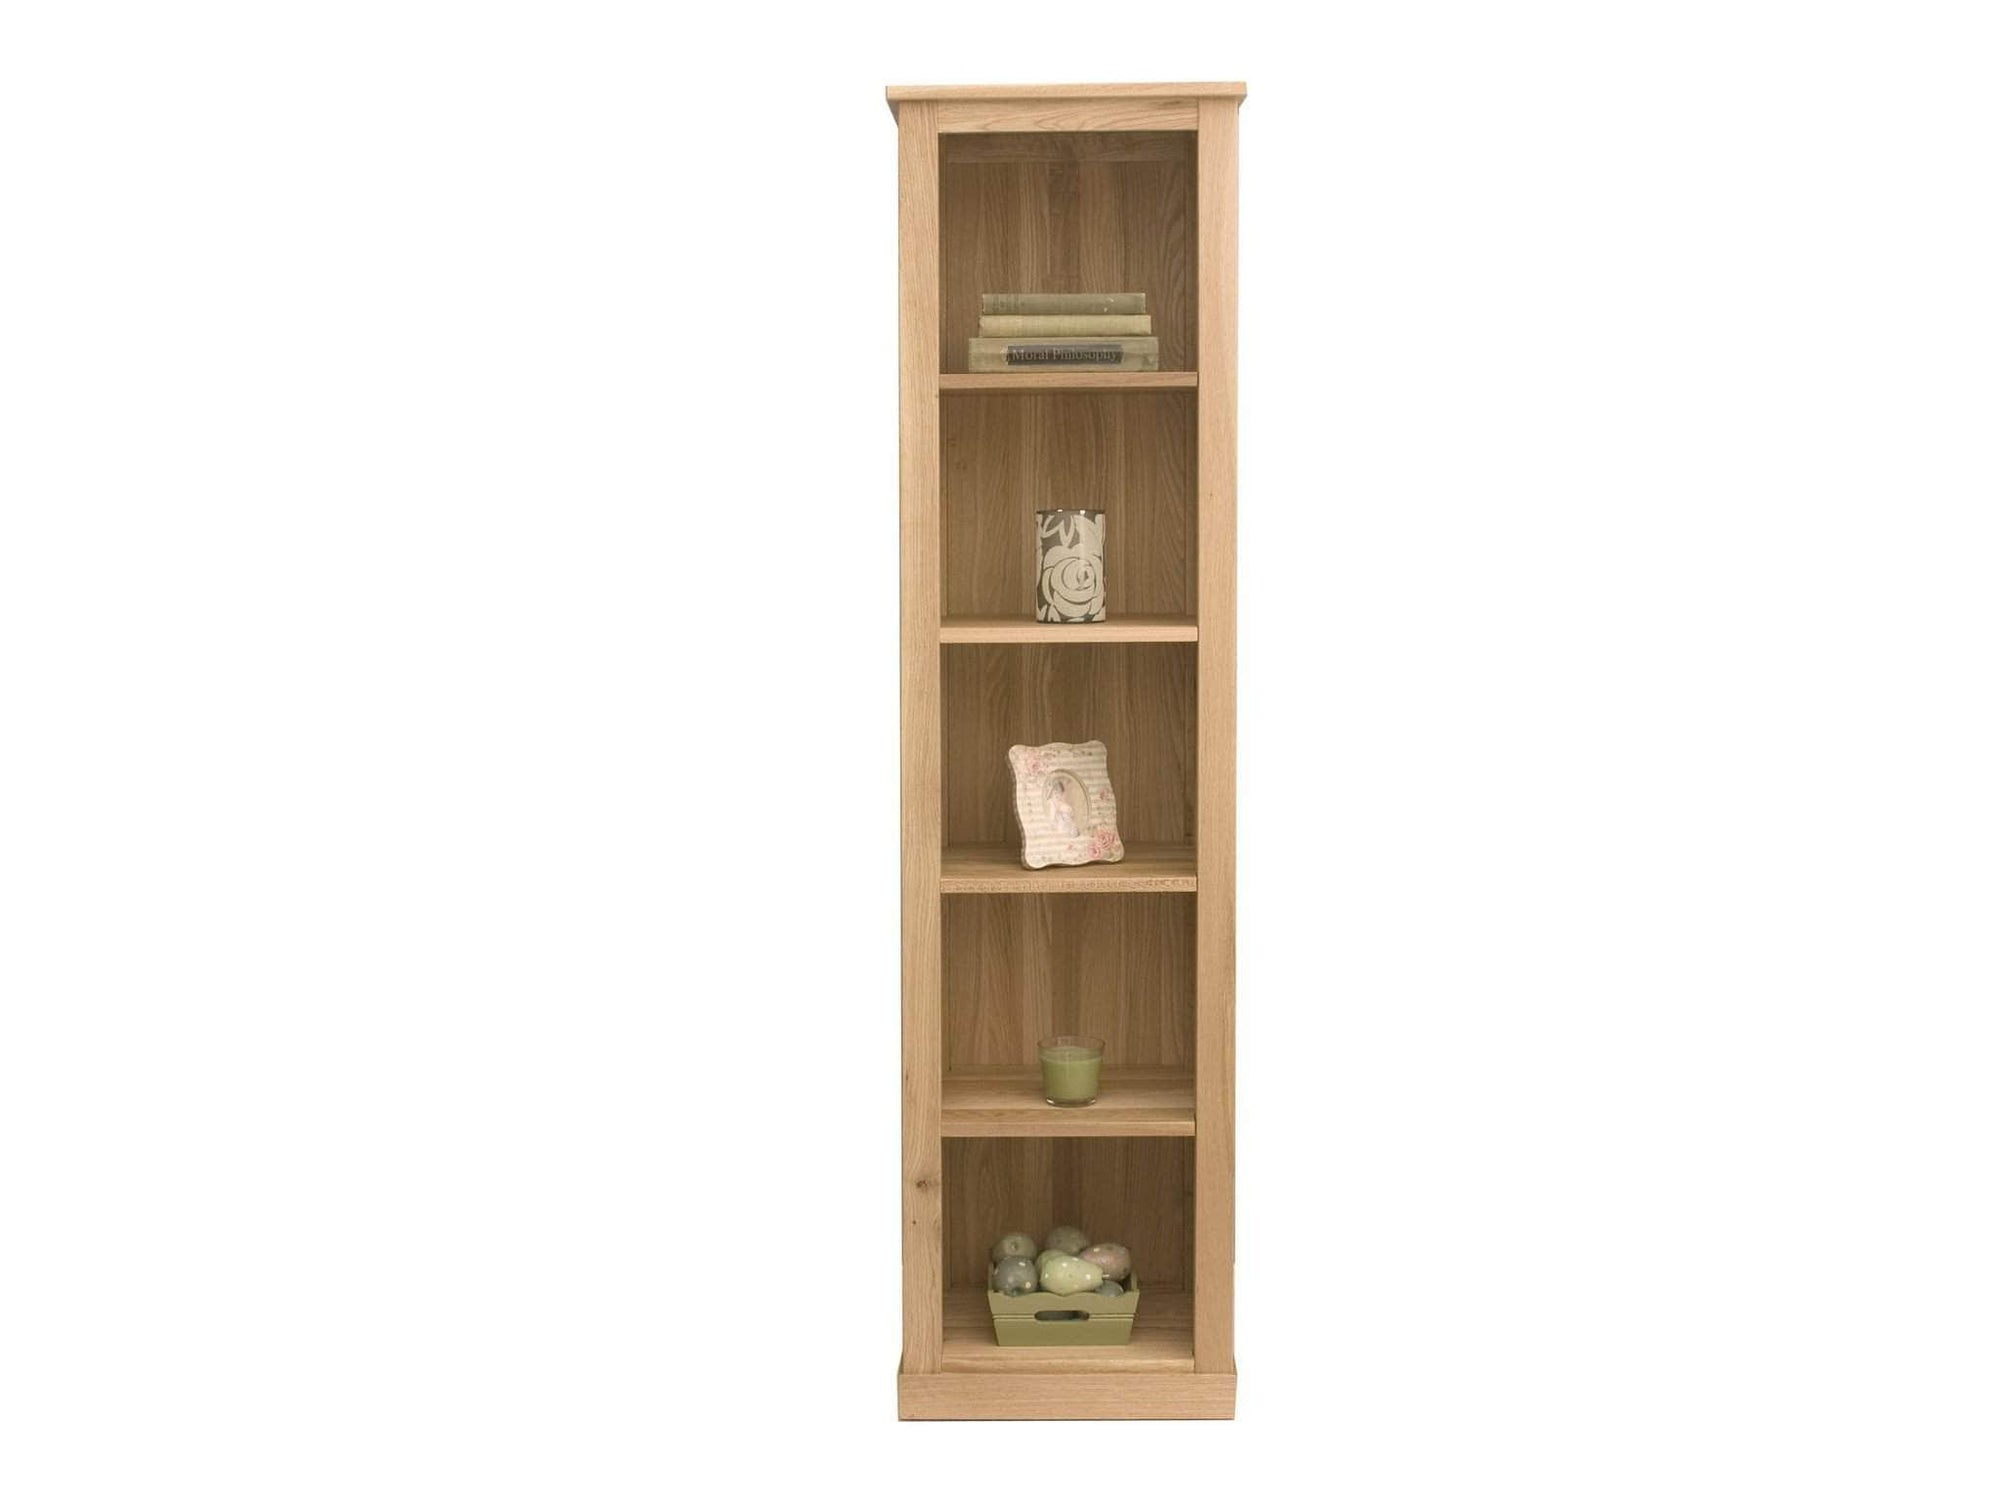 Narrow oak bookcase with five shelves